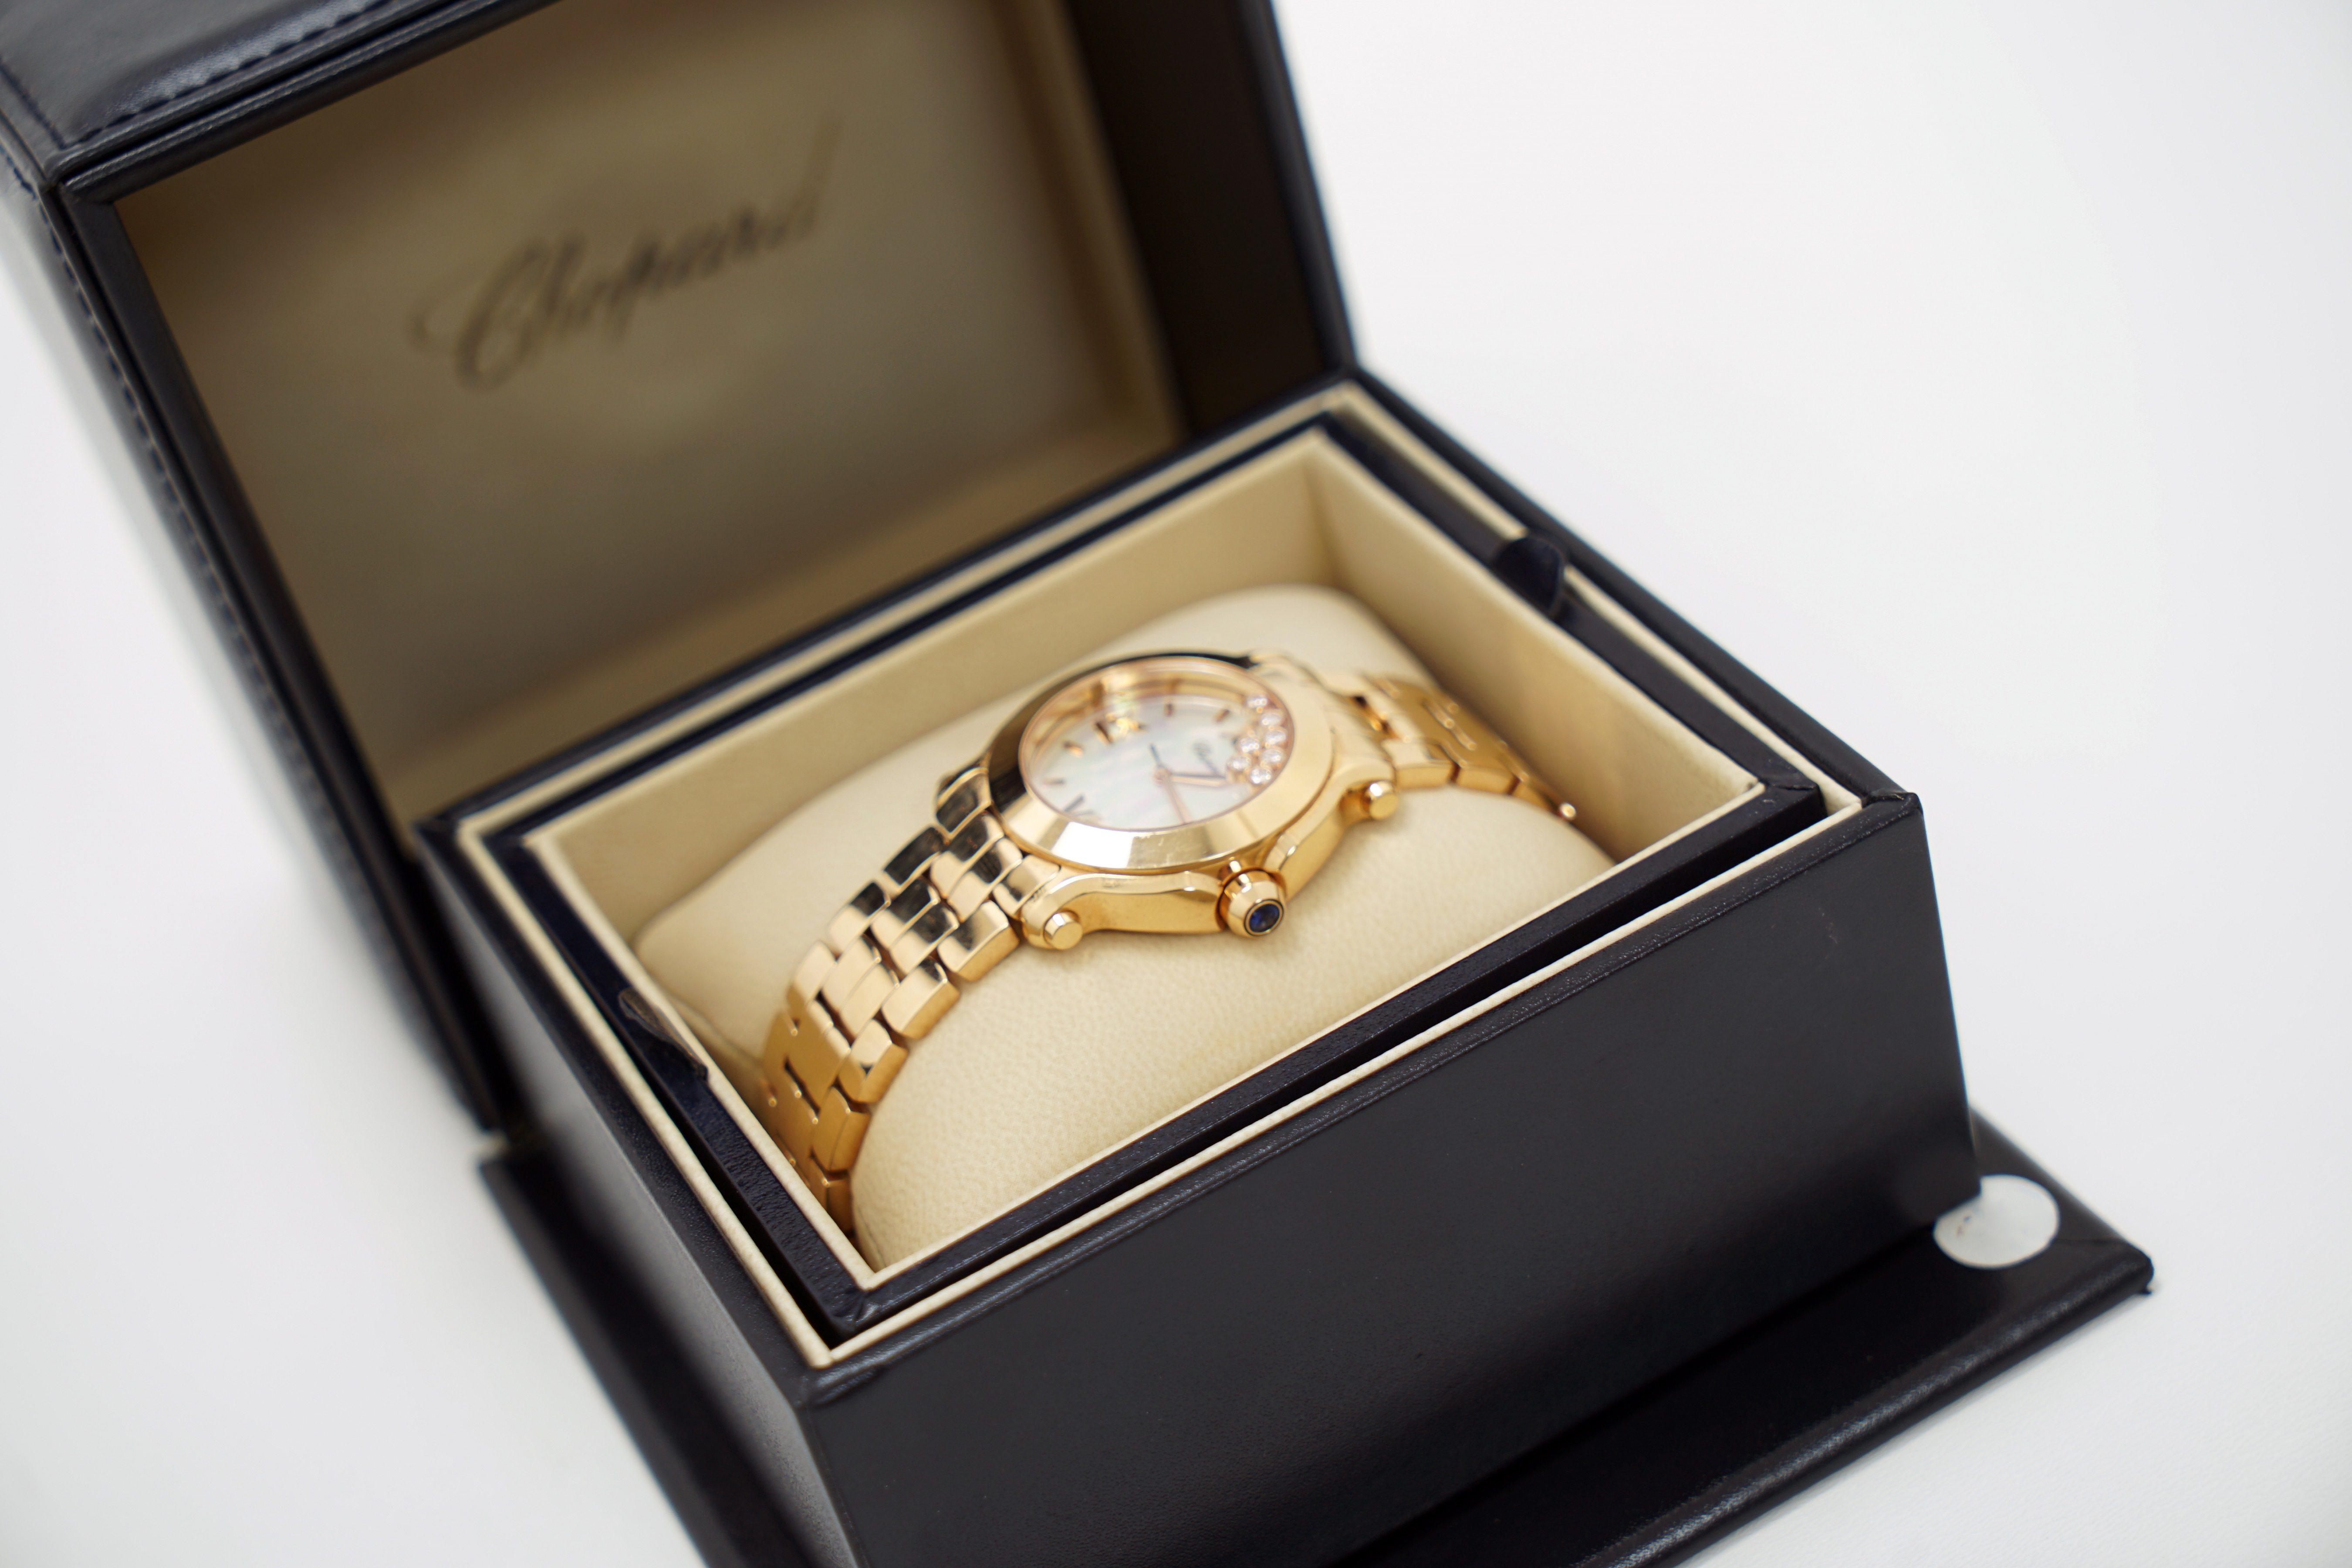 A Lady's 18K Rotgold Chopard Happy Sport Wristwatch with 1 Sapphire and 7 Diamonds - Image 8 of 10